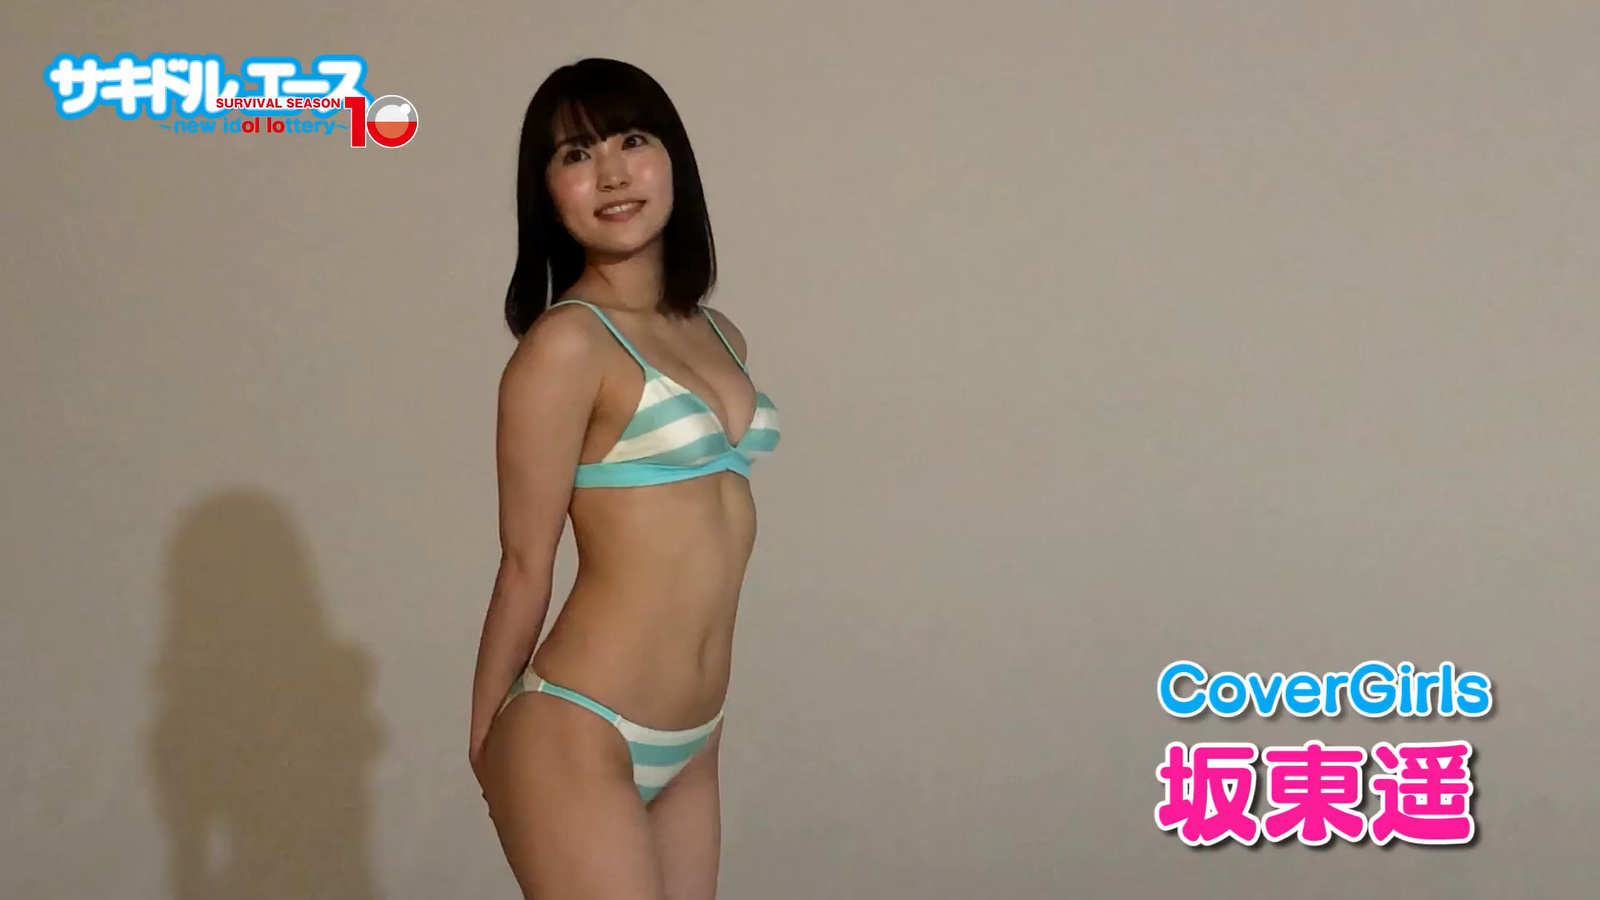 Sakidol Ace 10 Introduction Movie Capture of Swimsuit111